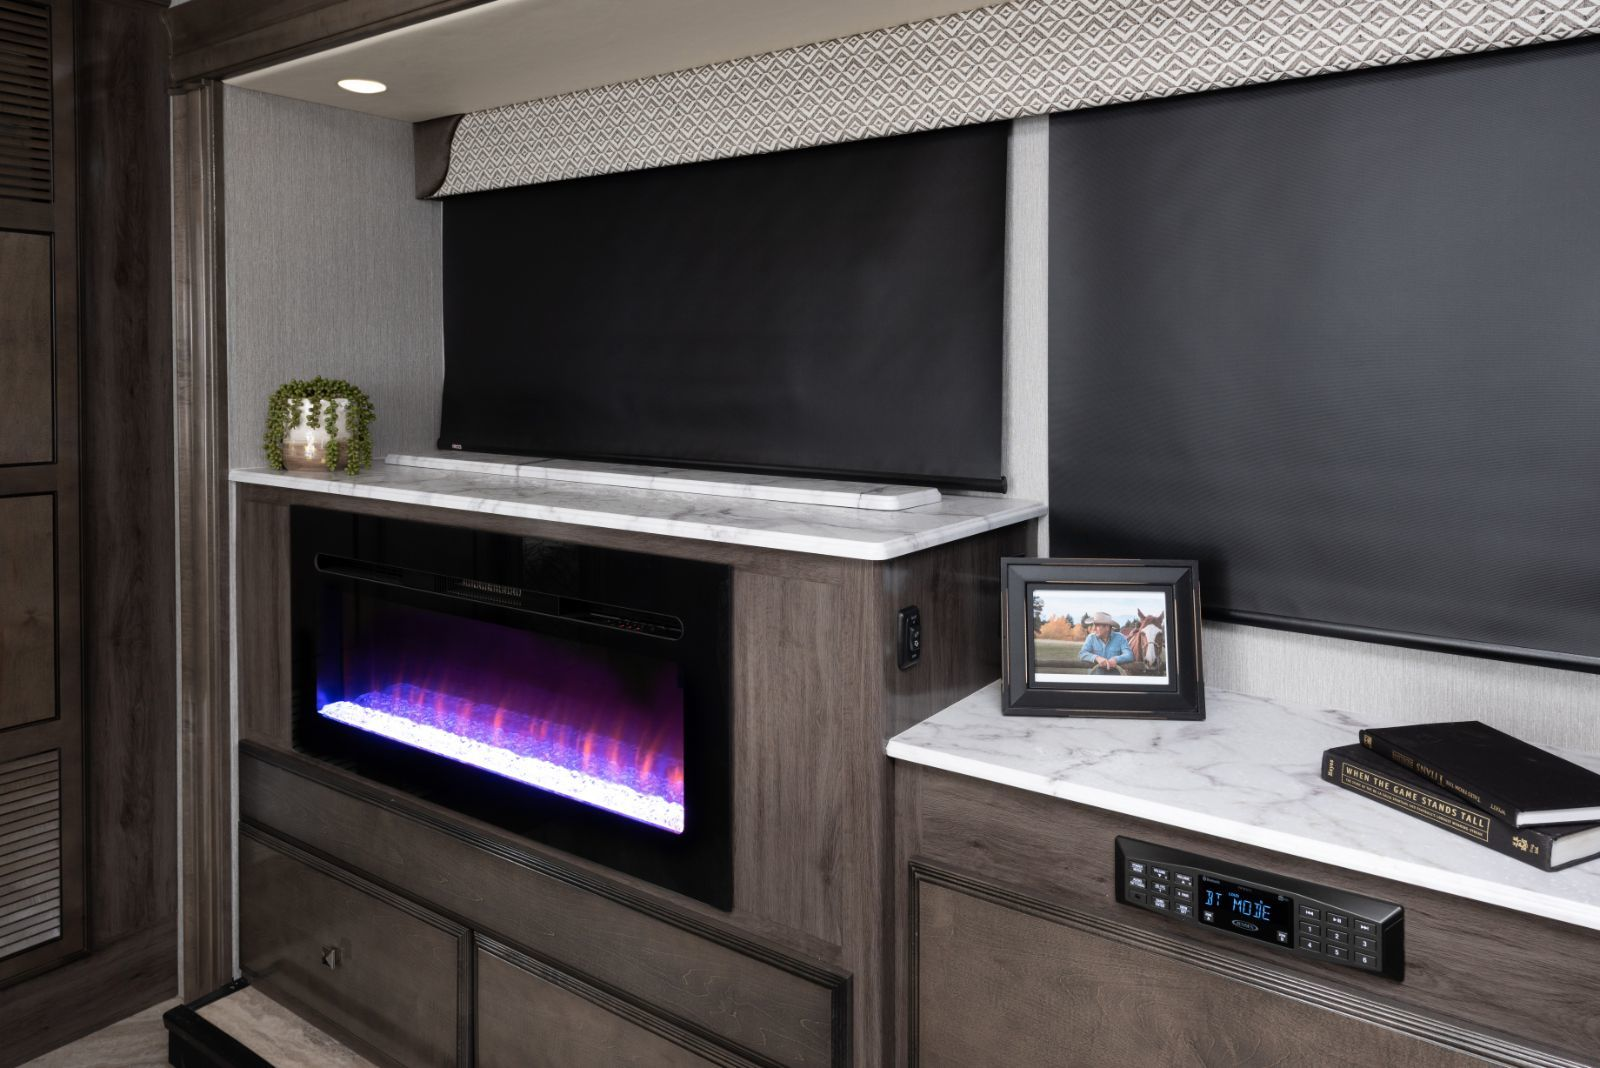 Fortis 32RW Manhattan décor with Greystone cabinetry